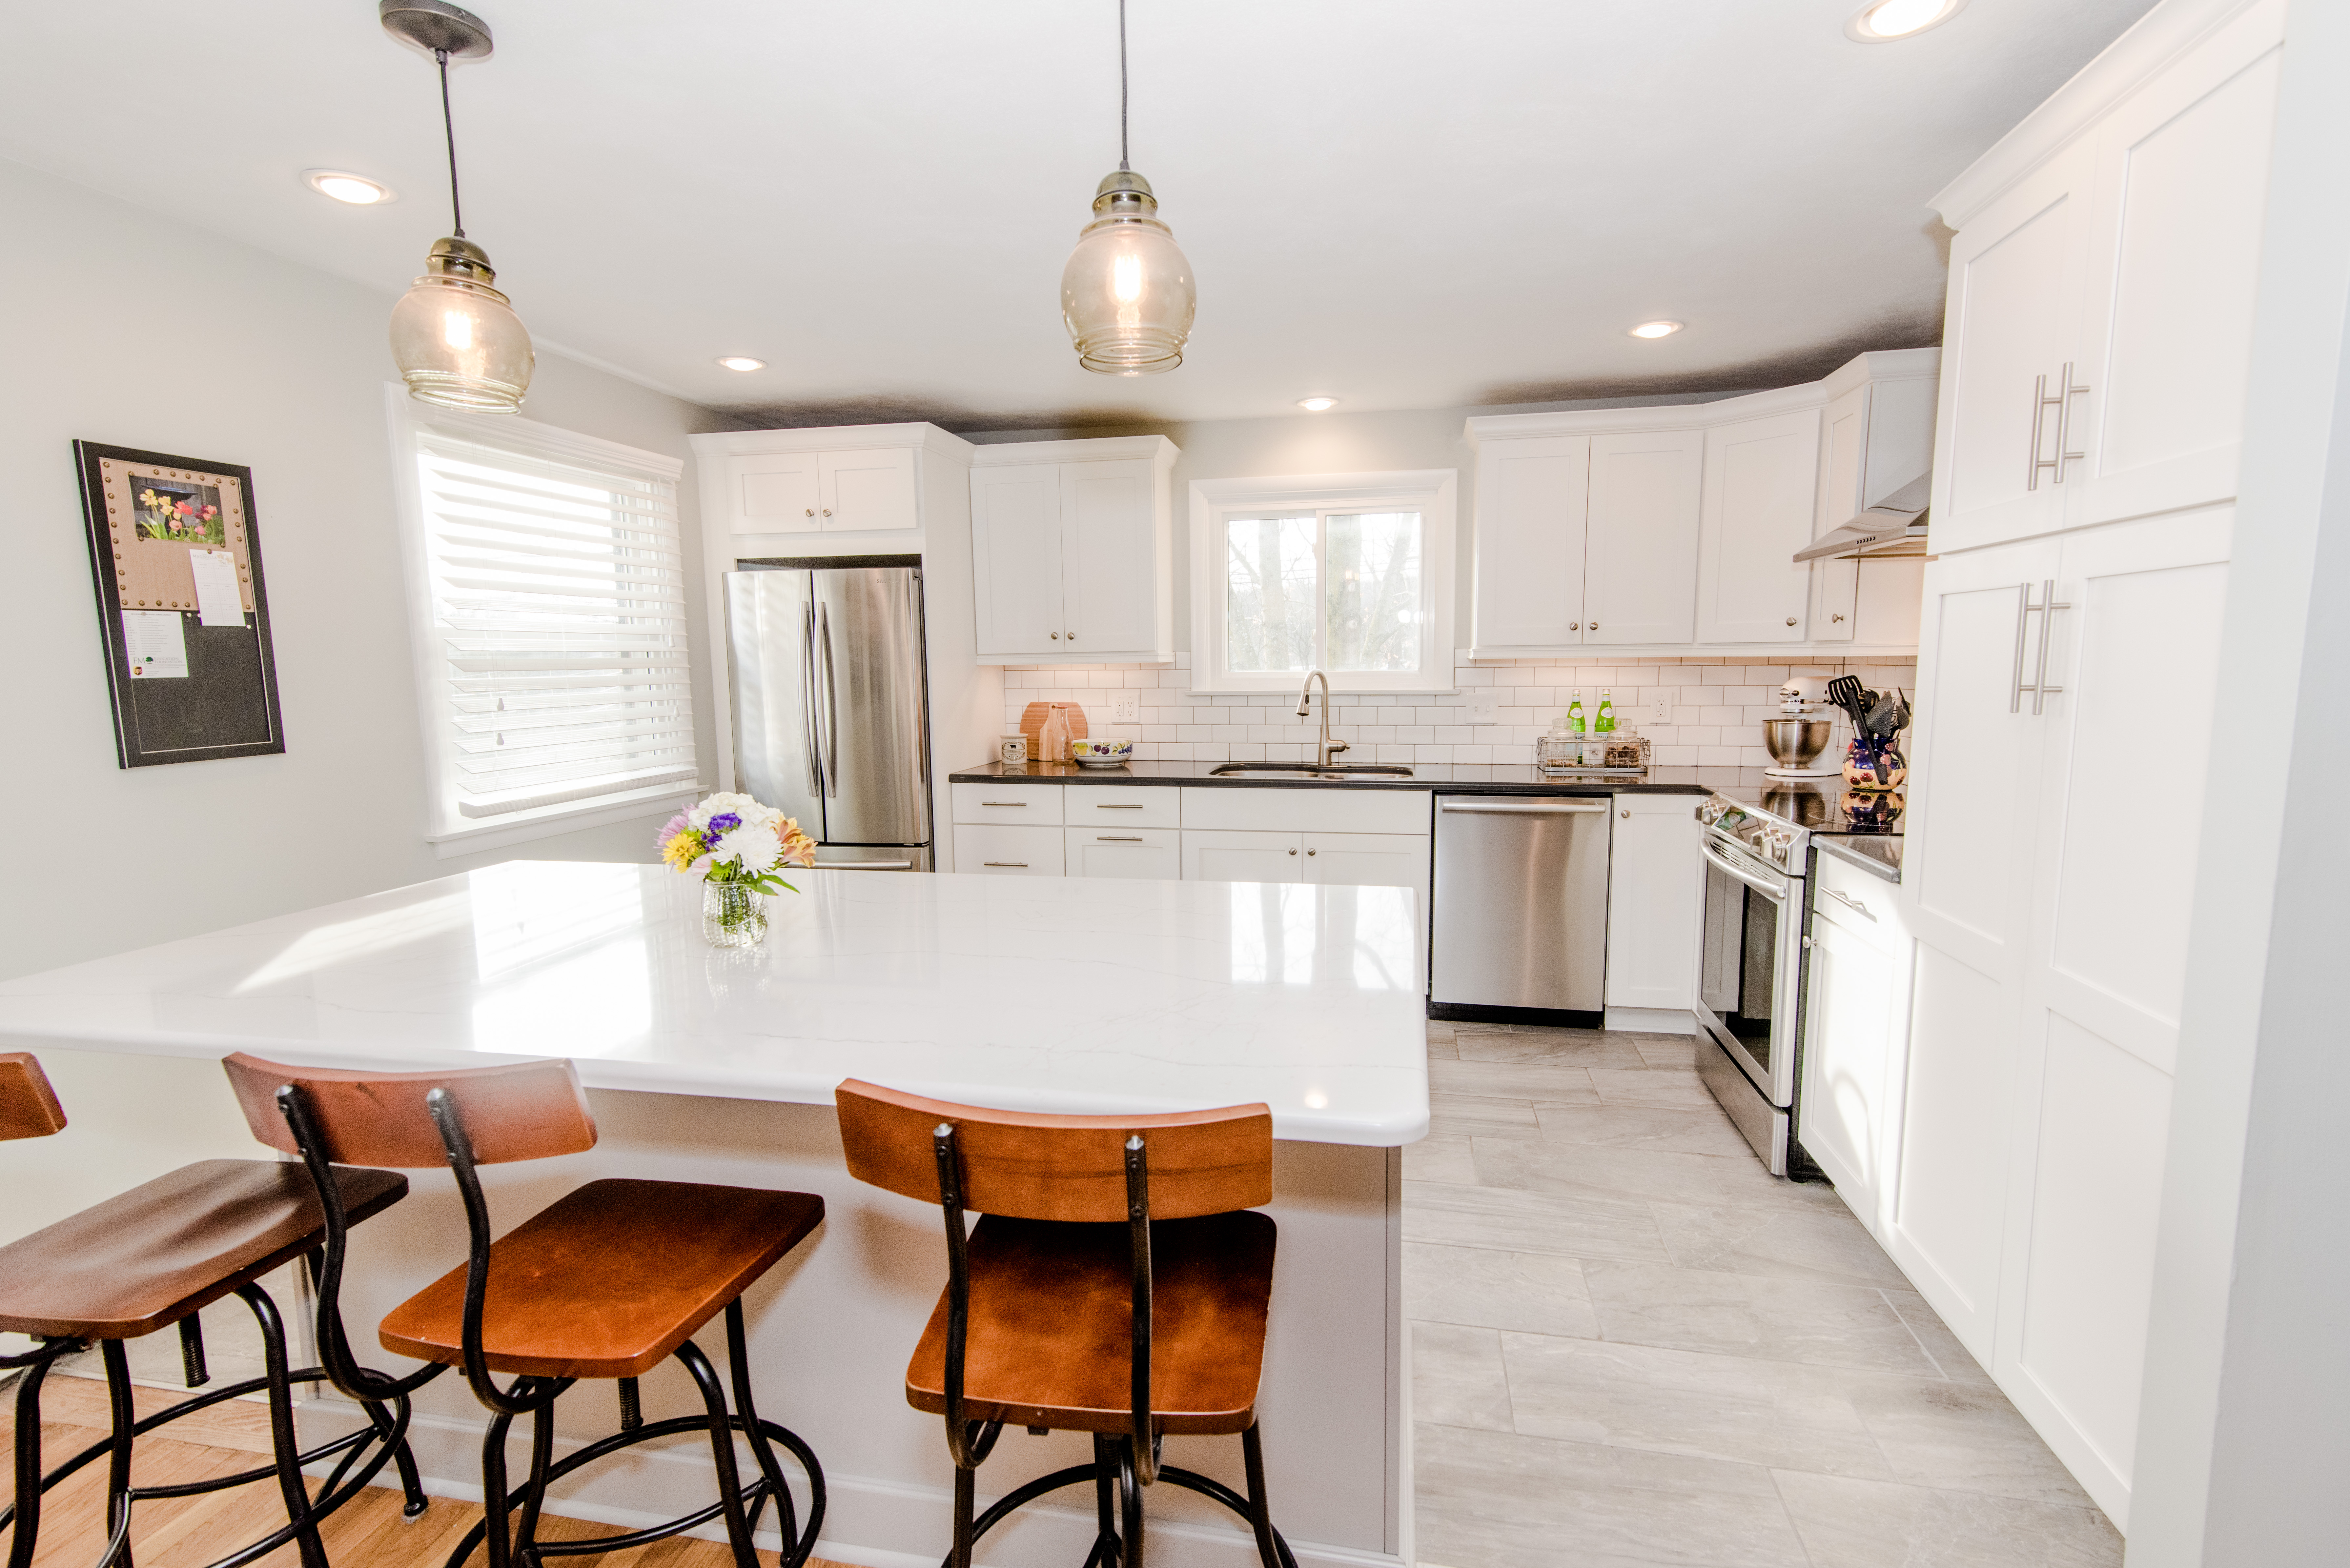 syracuse kitchen renovation and design marinich builders